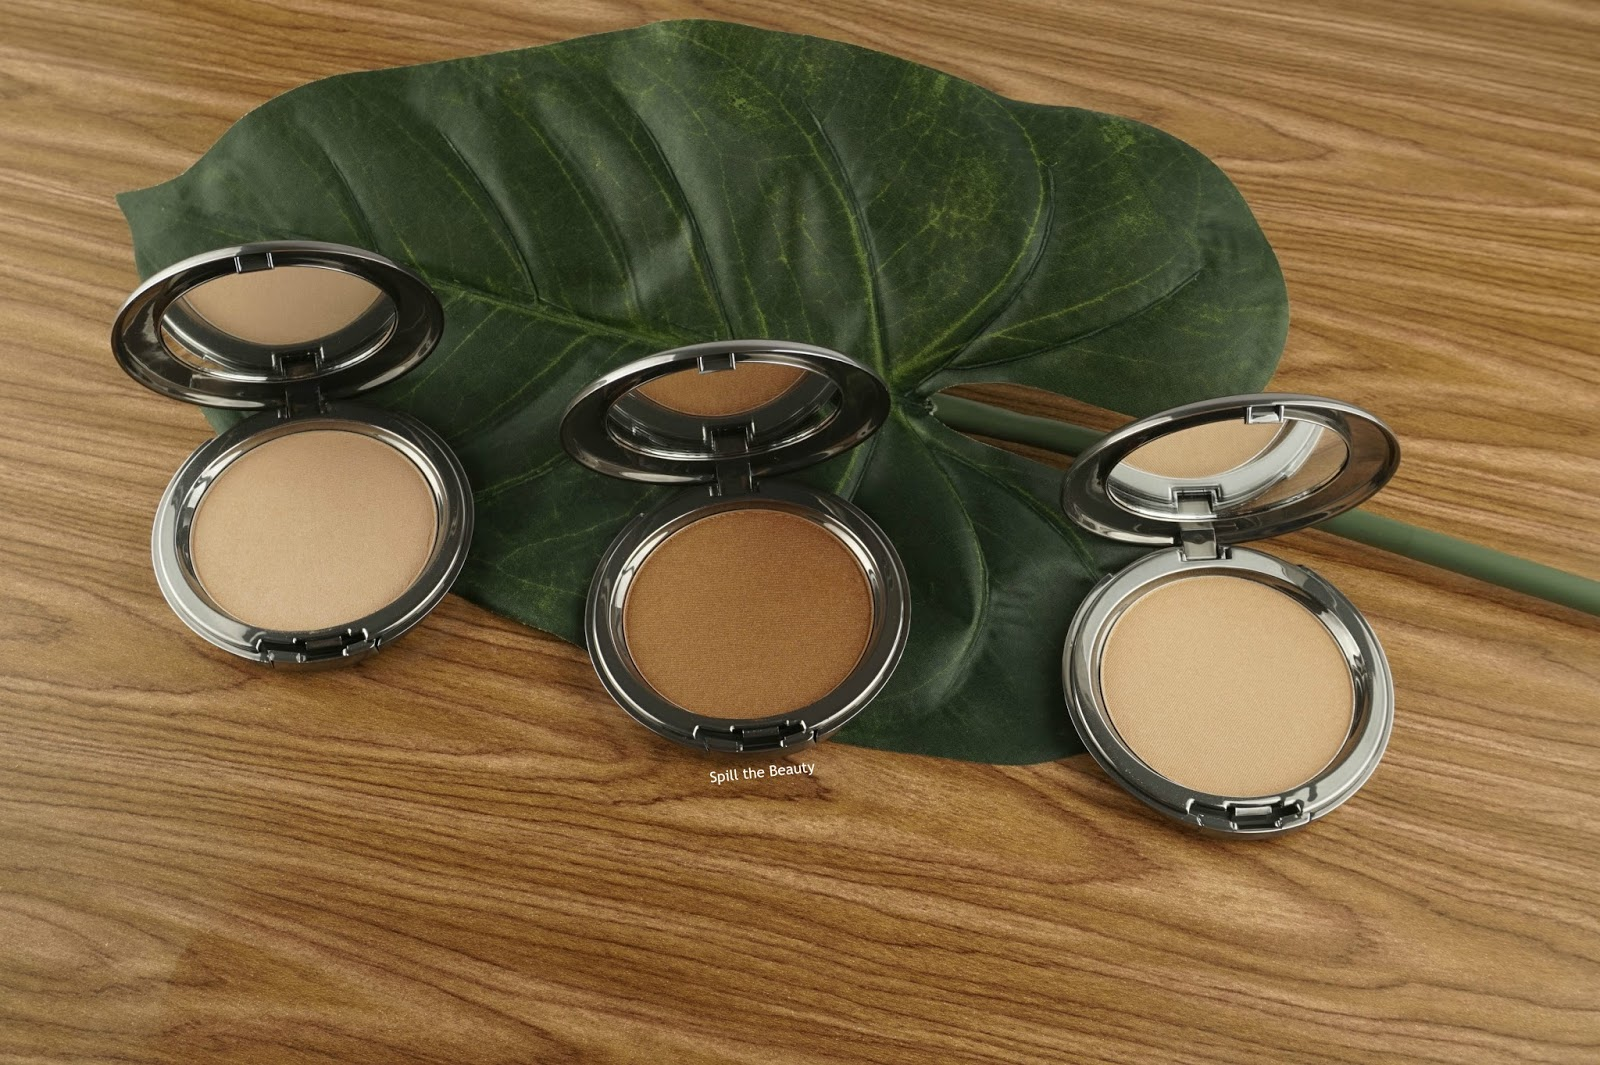 cover fx perfect light highlighting powder unlight moonlight candlelight review swatches